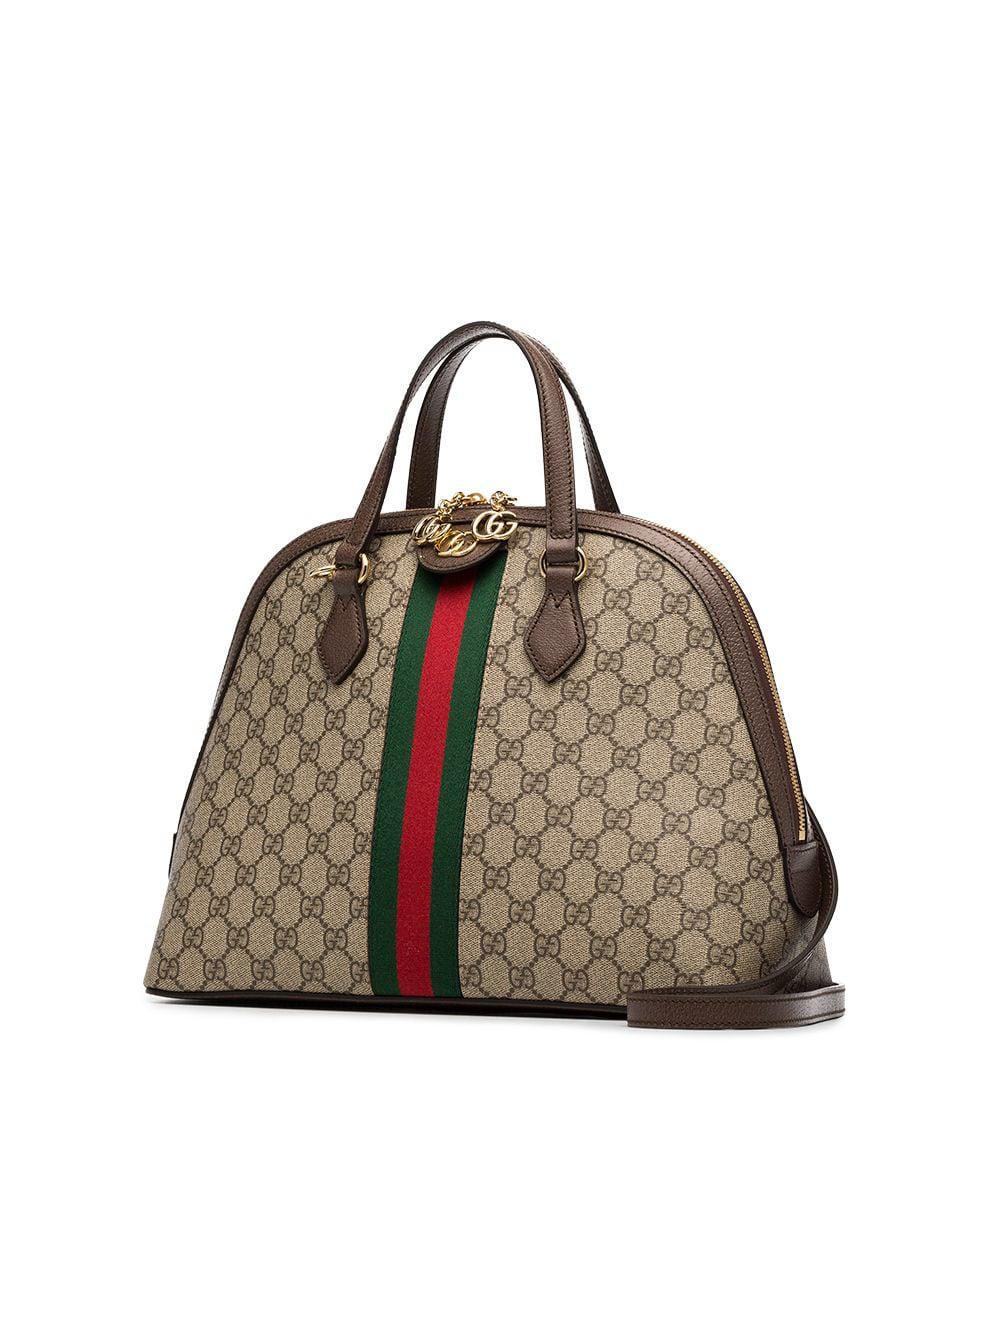 Gucci Ophidia Gg Supreme Dome Top Handle Bag in Brown - Lyst e590bffb7ee